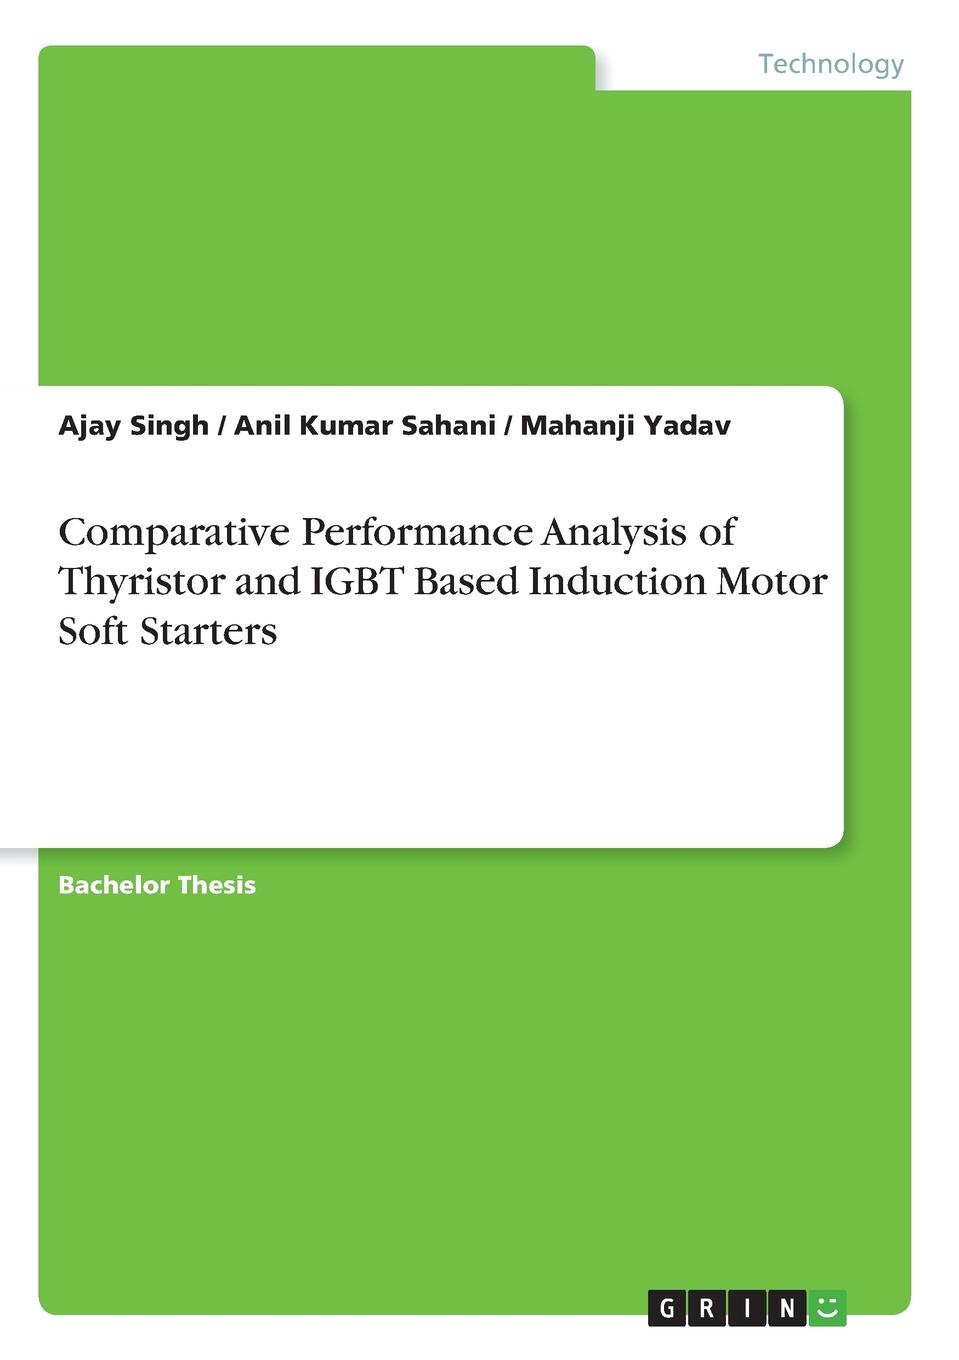 Ajay Singh, Anil Kumar Sahani, Mahanji Yadav Comparative Performance Analysis of Thyristor and IGBT Based Induction Motor Soft Starters стоимость